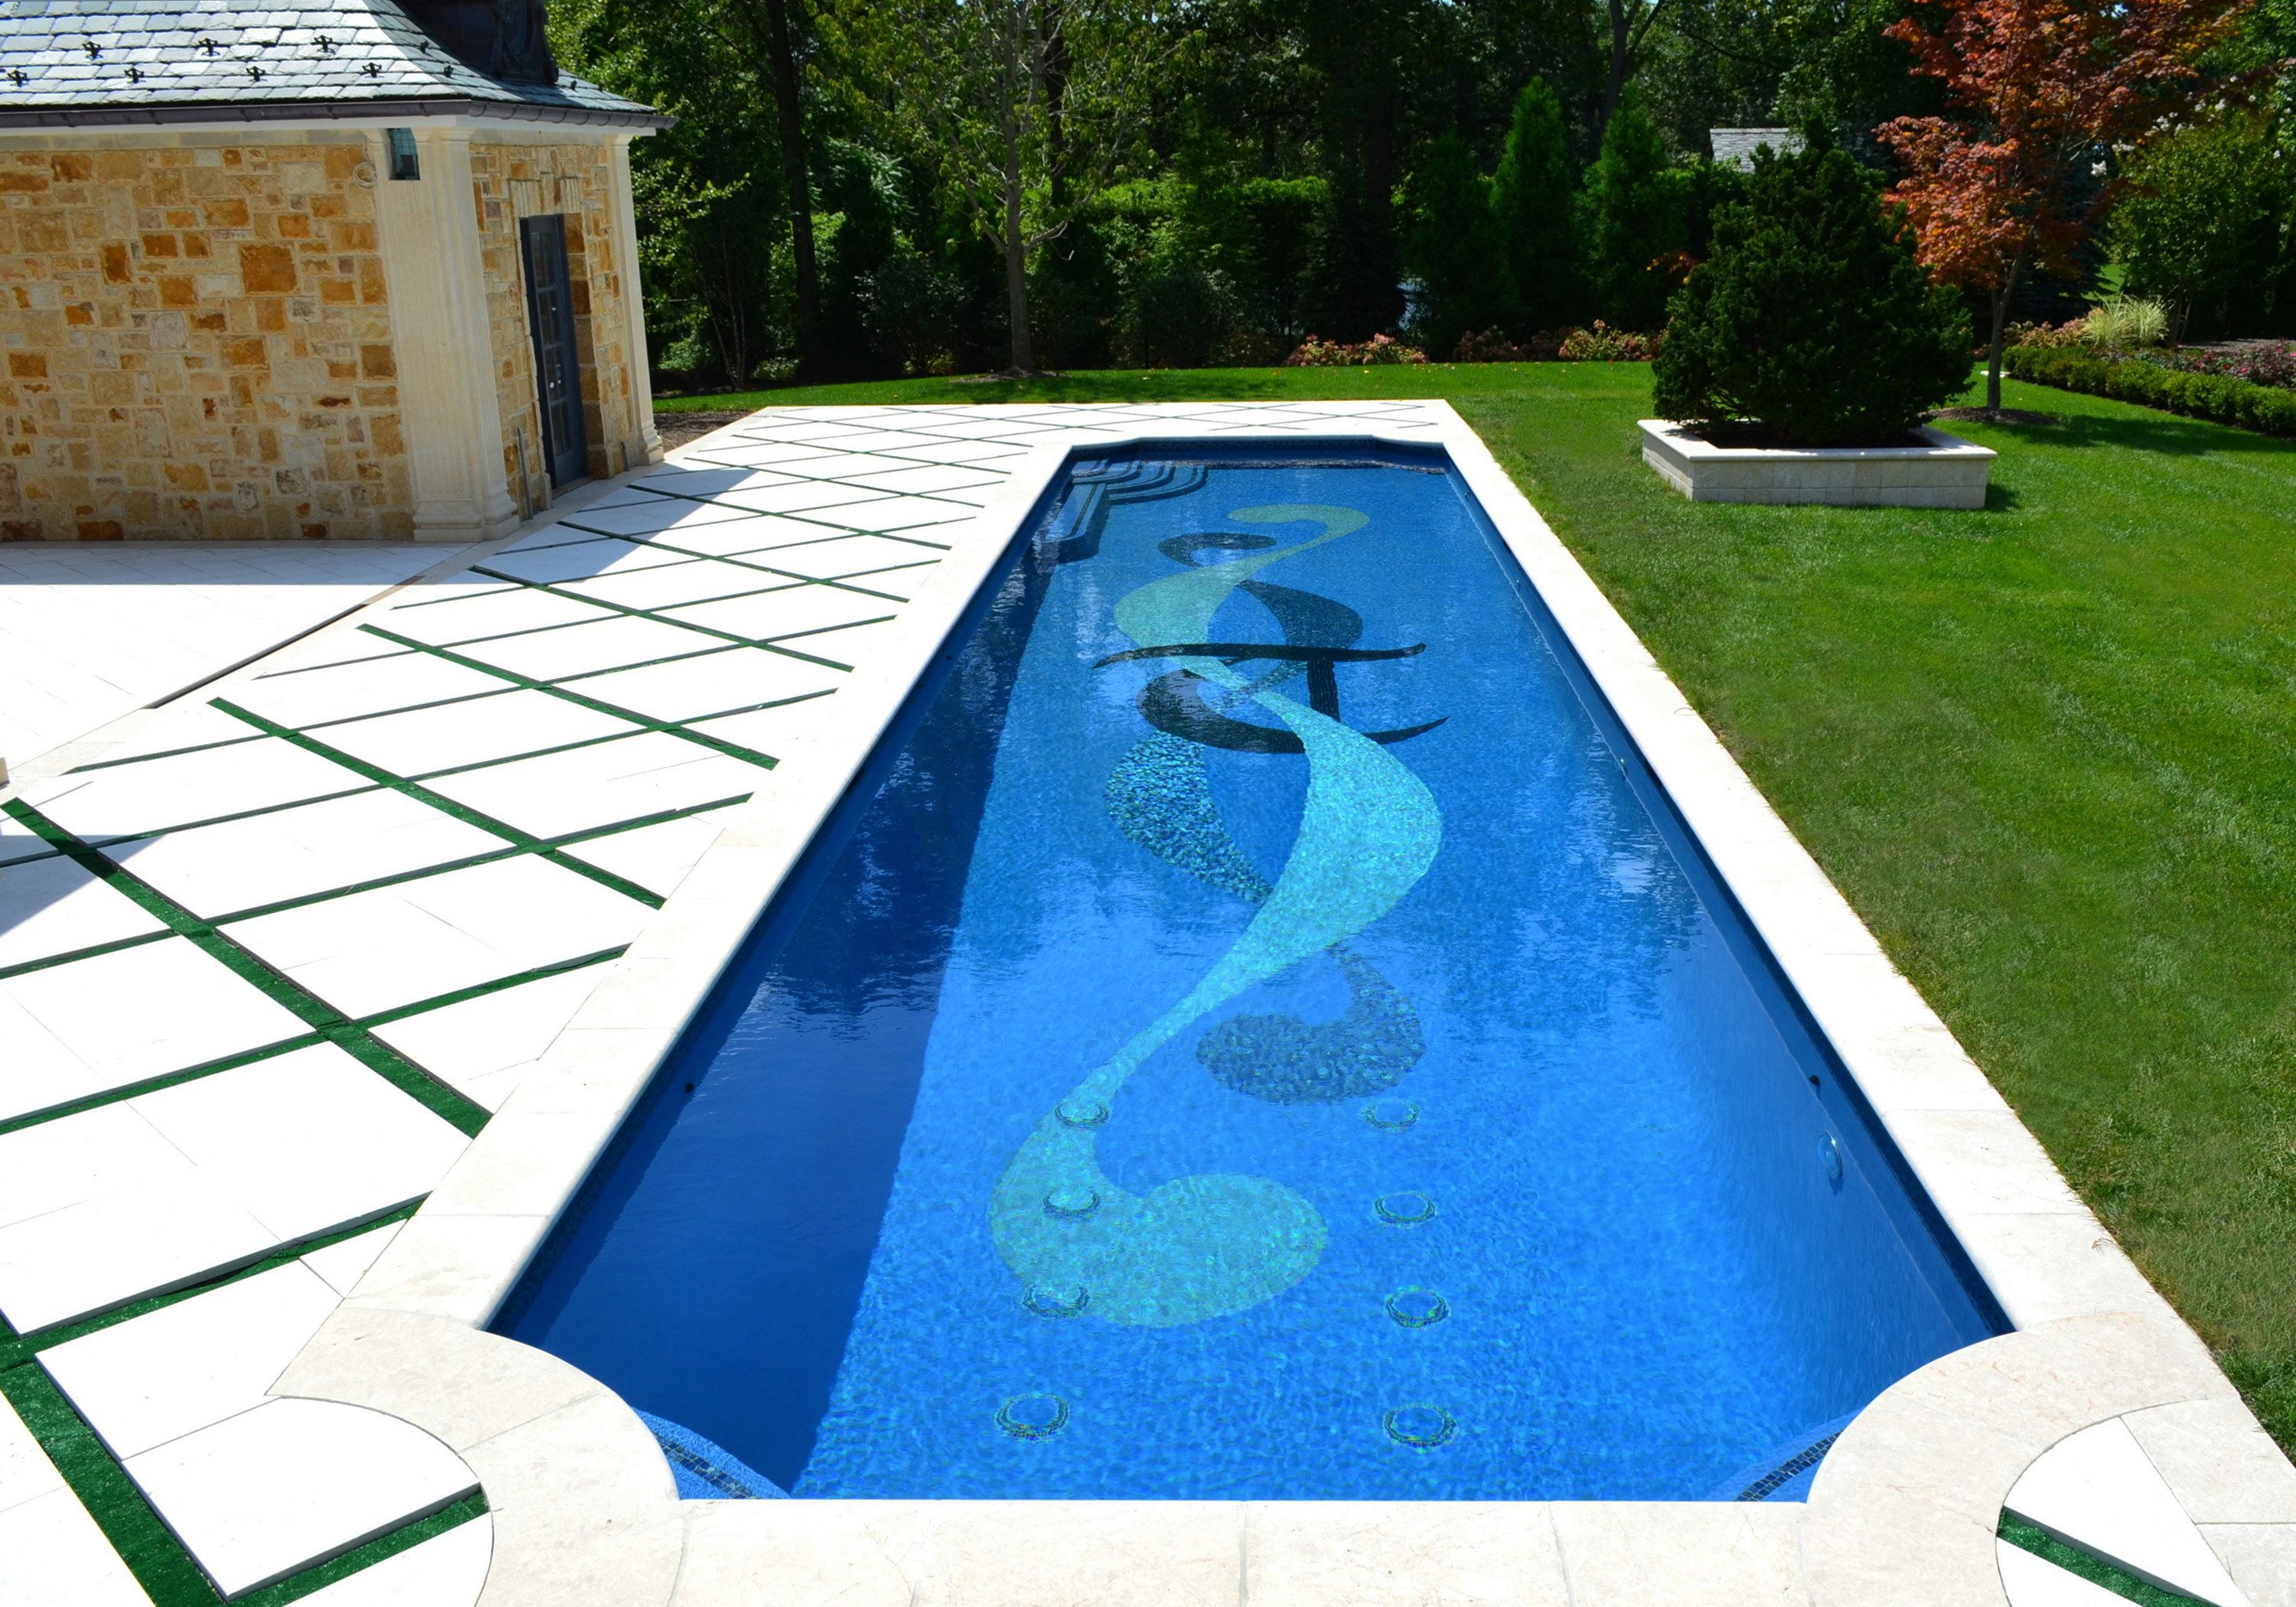 Swimming Pool Design Shape Pool Design Bergen County Nj Luxury Glass Tile Inground Swimming Pool